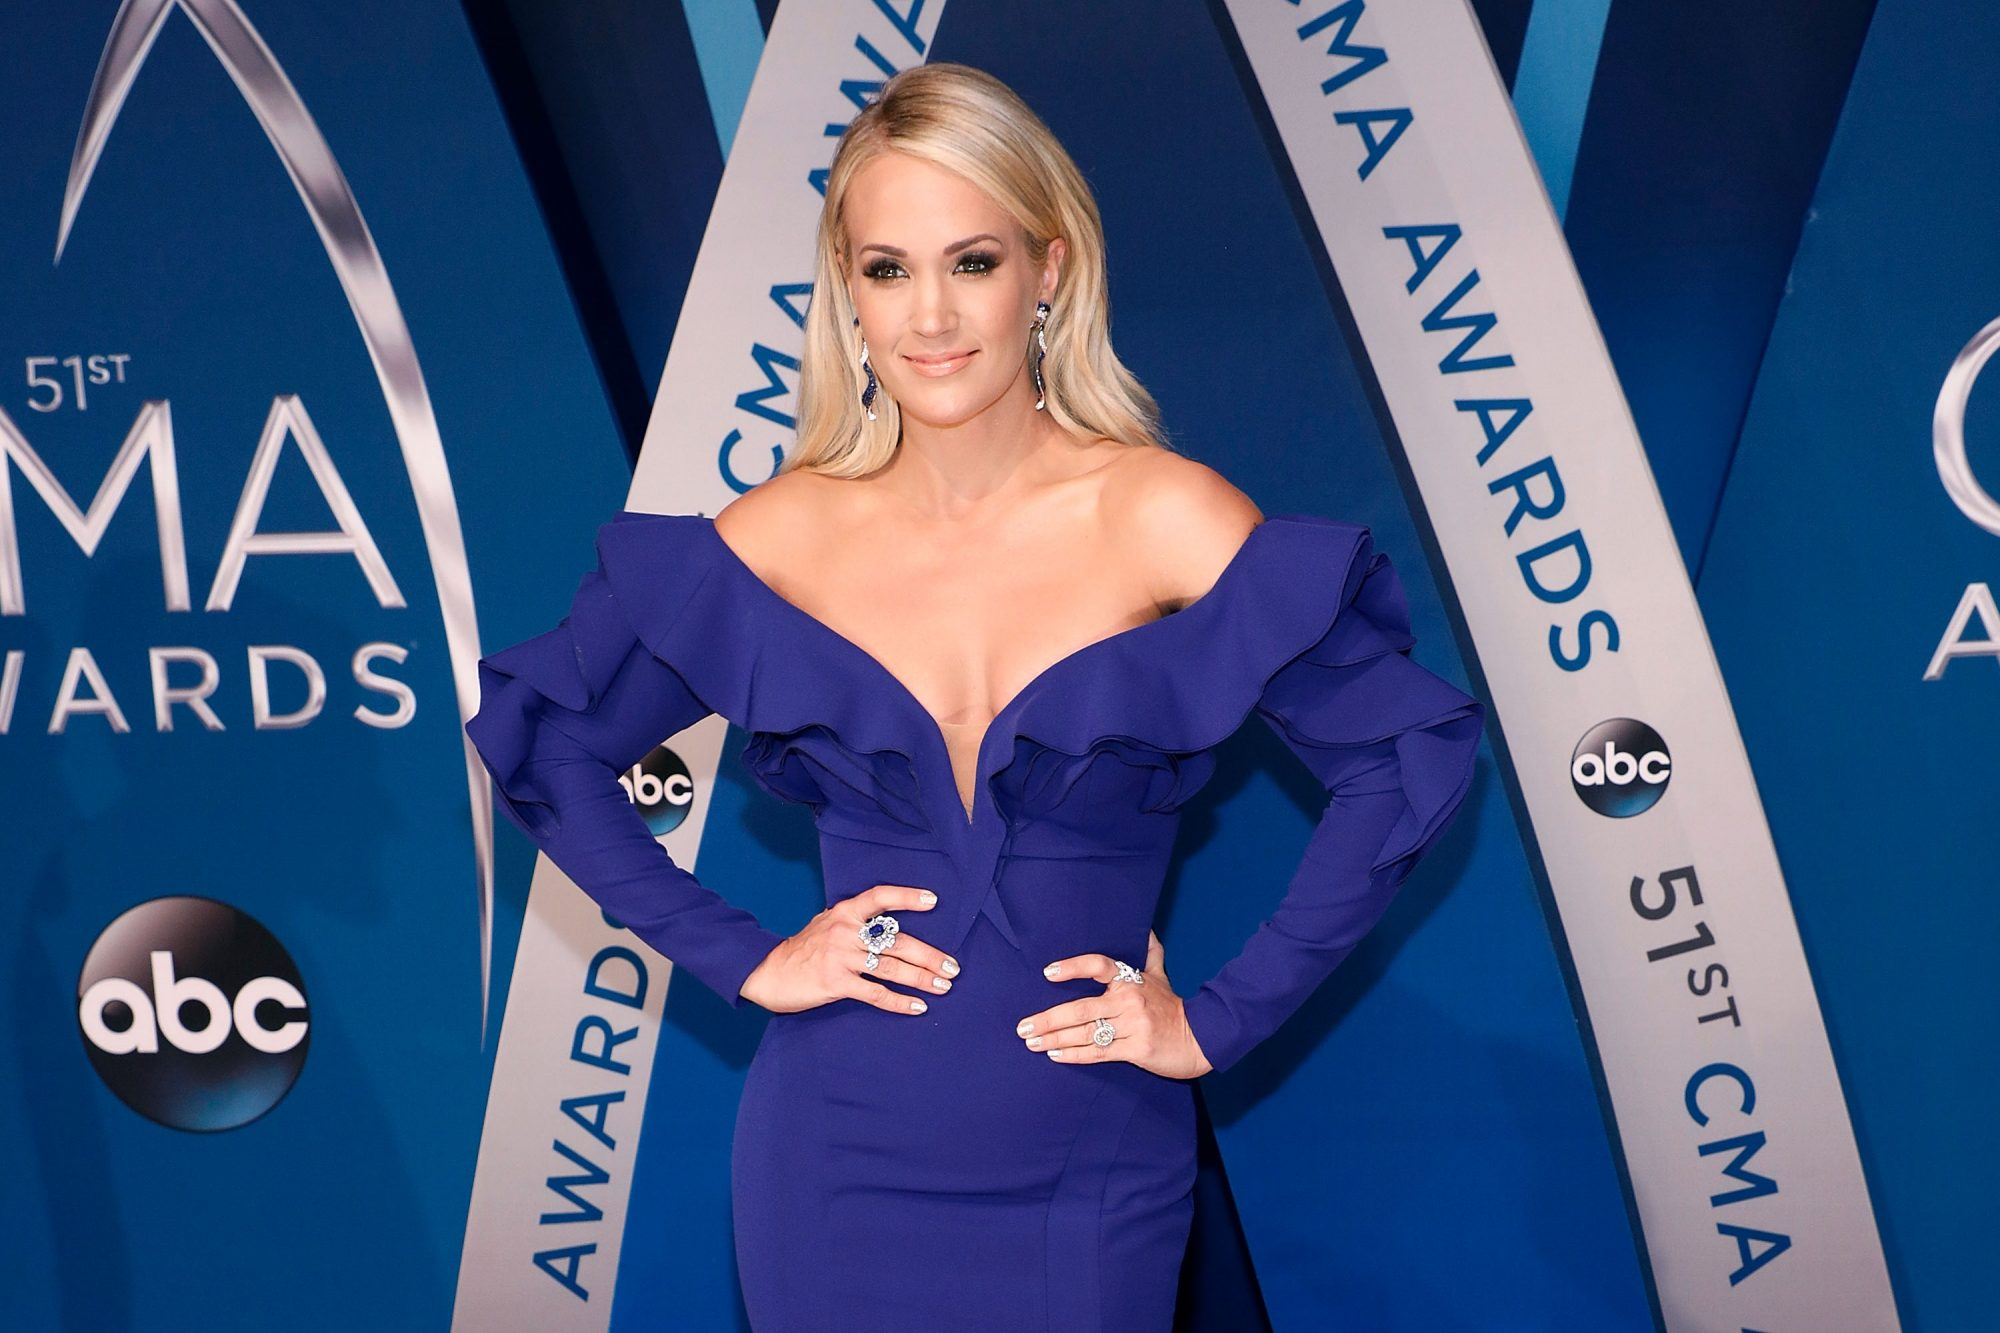 carrie underwood needed 40 to 50 face stitches health